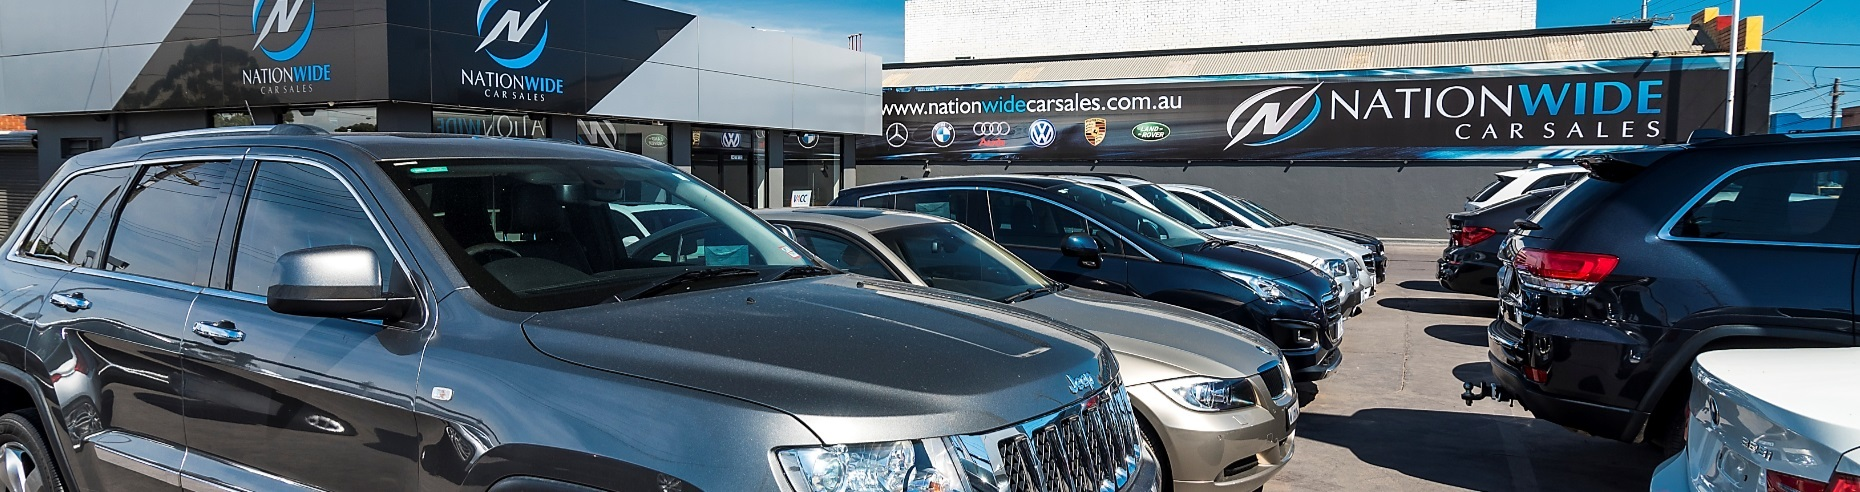 Nationwide Car Sales | Banner 4